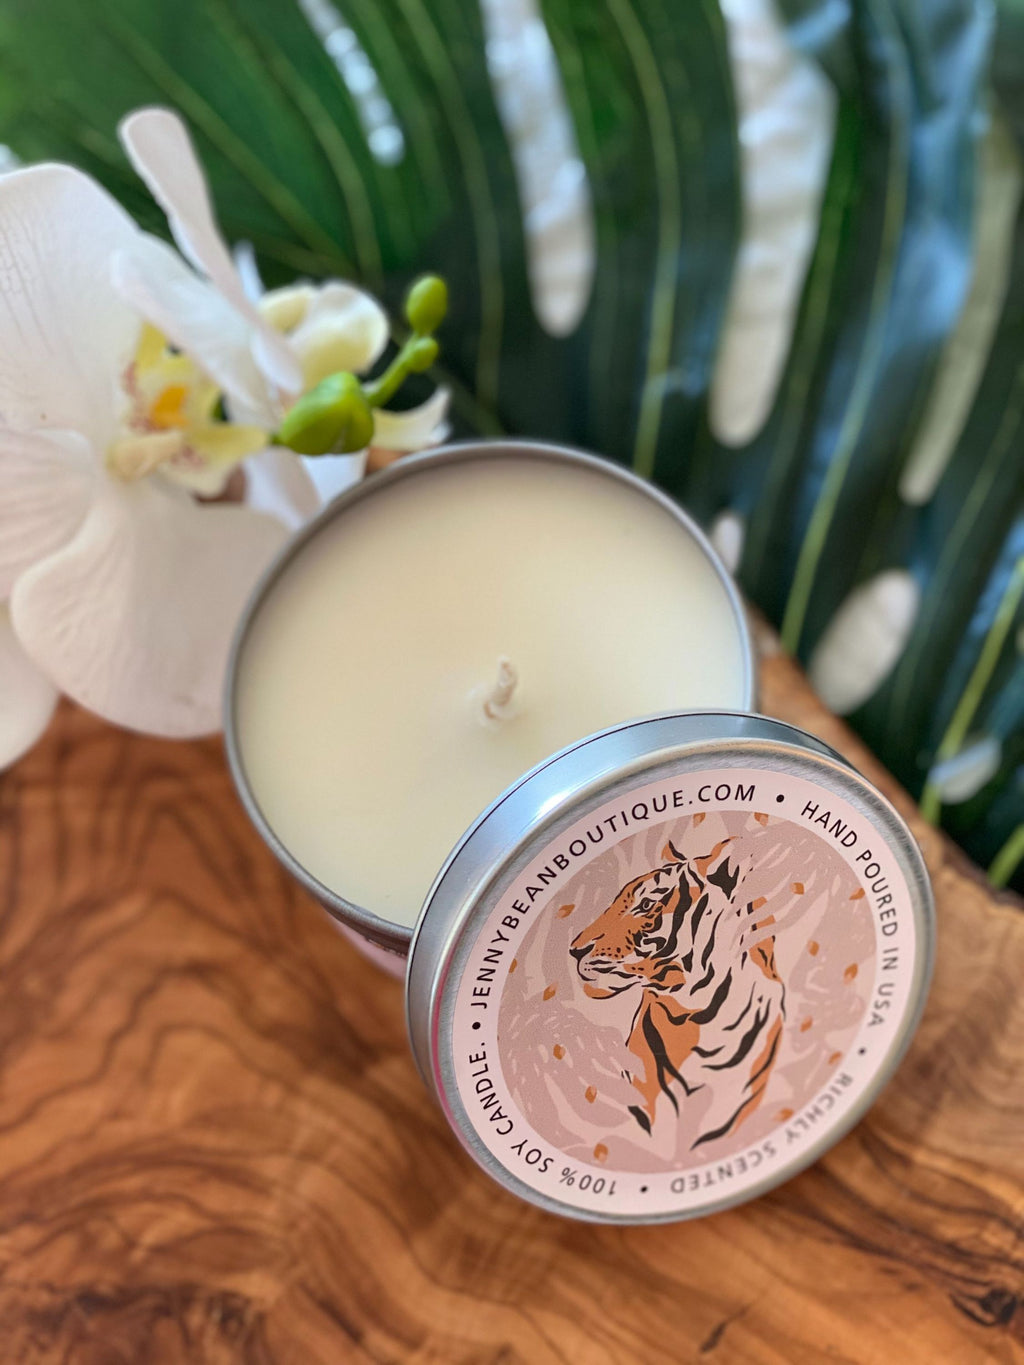 Pink Pepper & Vetiver- Tiger Soy Candle